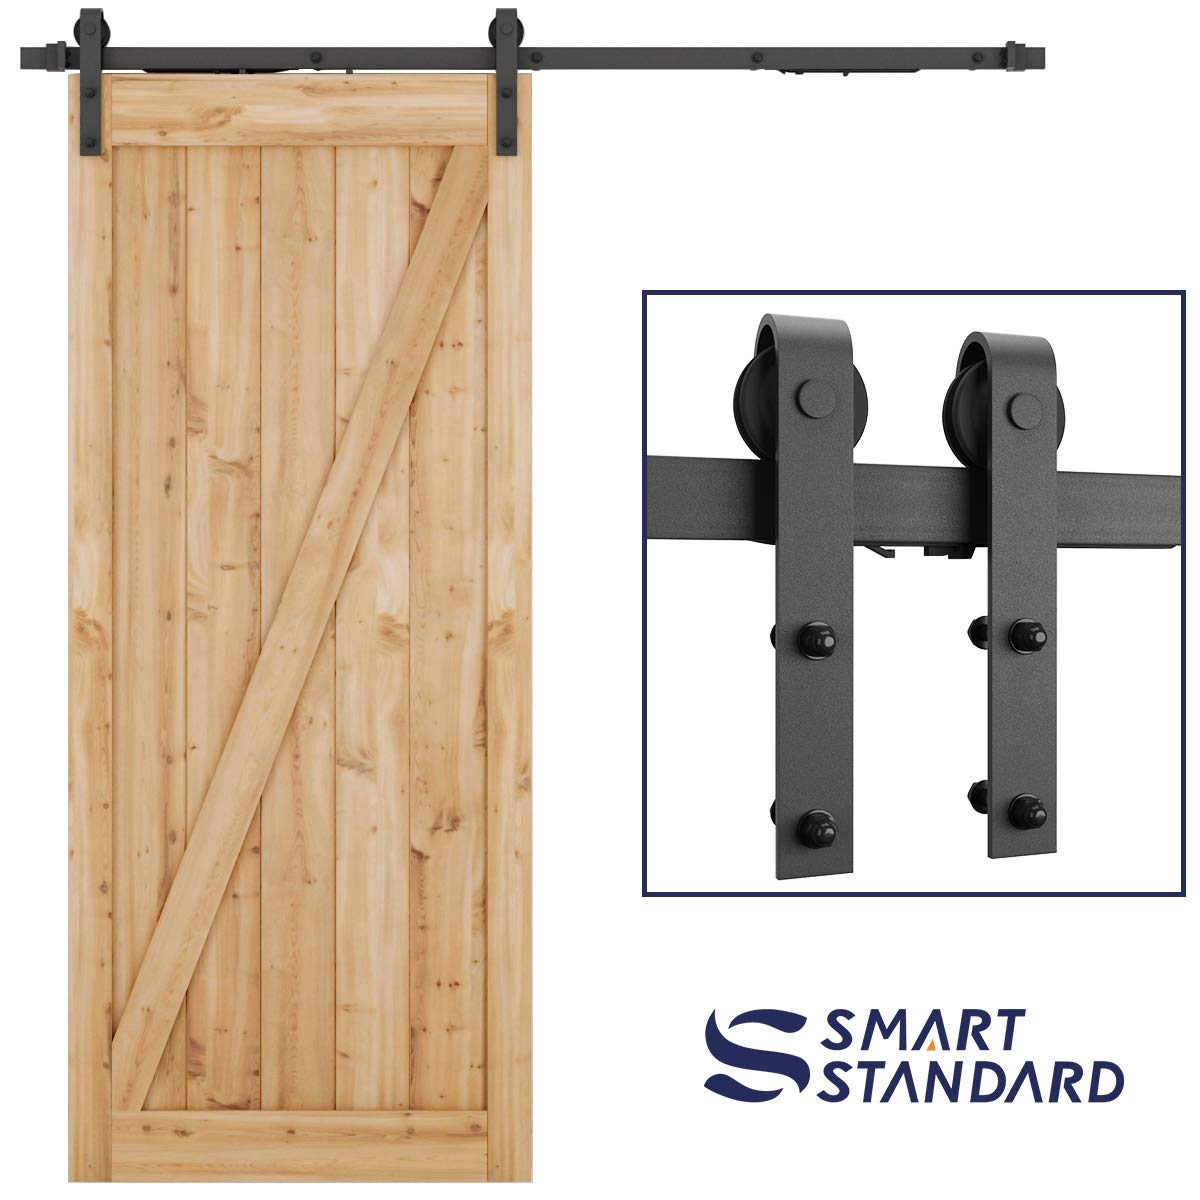 6.6ft Soft Close Heavy Duty Sturdy Sliding Barn Door Hardware Kit - Smoothly and Quietly - Simple and Easy to Install - Includes Step-By-Step Installation Instruction -Fit 36''-40'' Door Panel(J Shape)